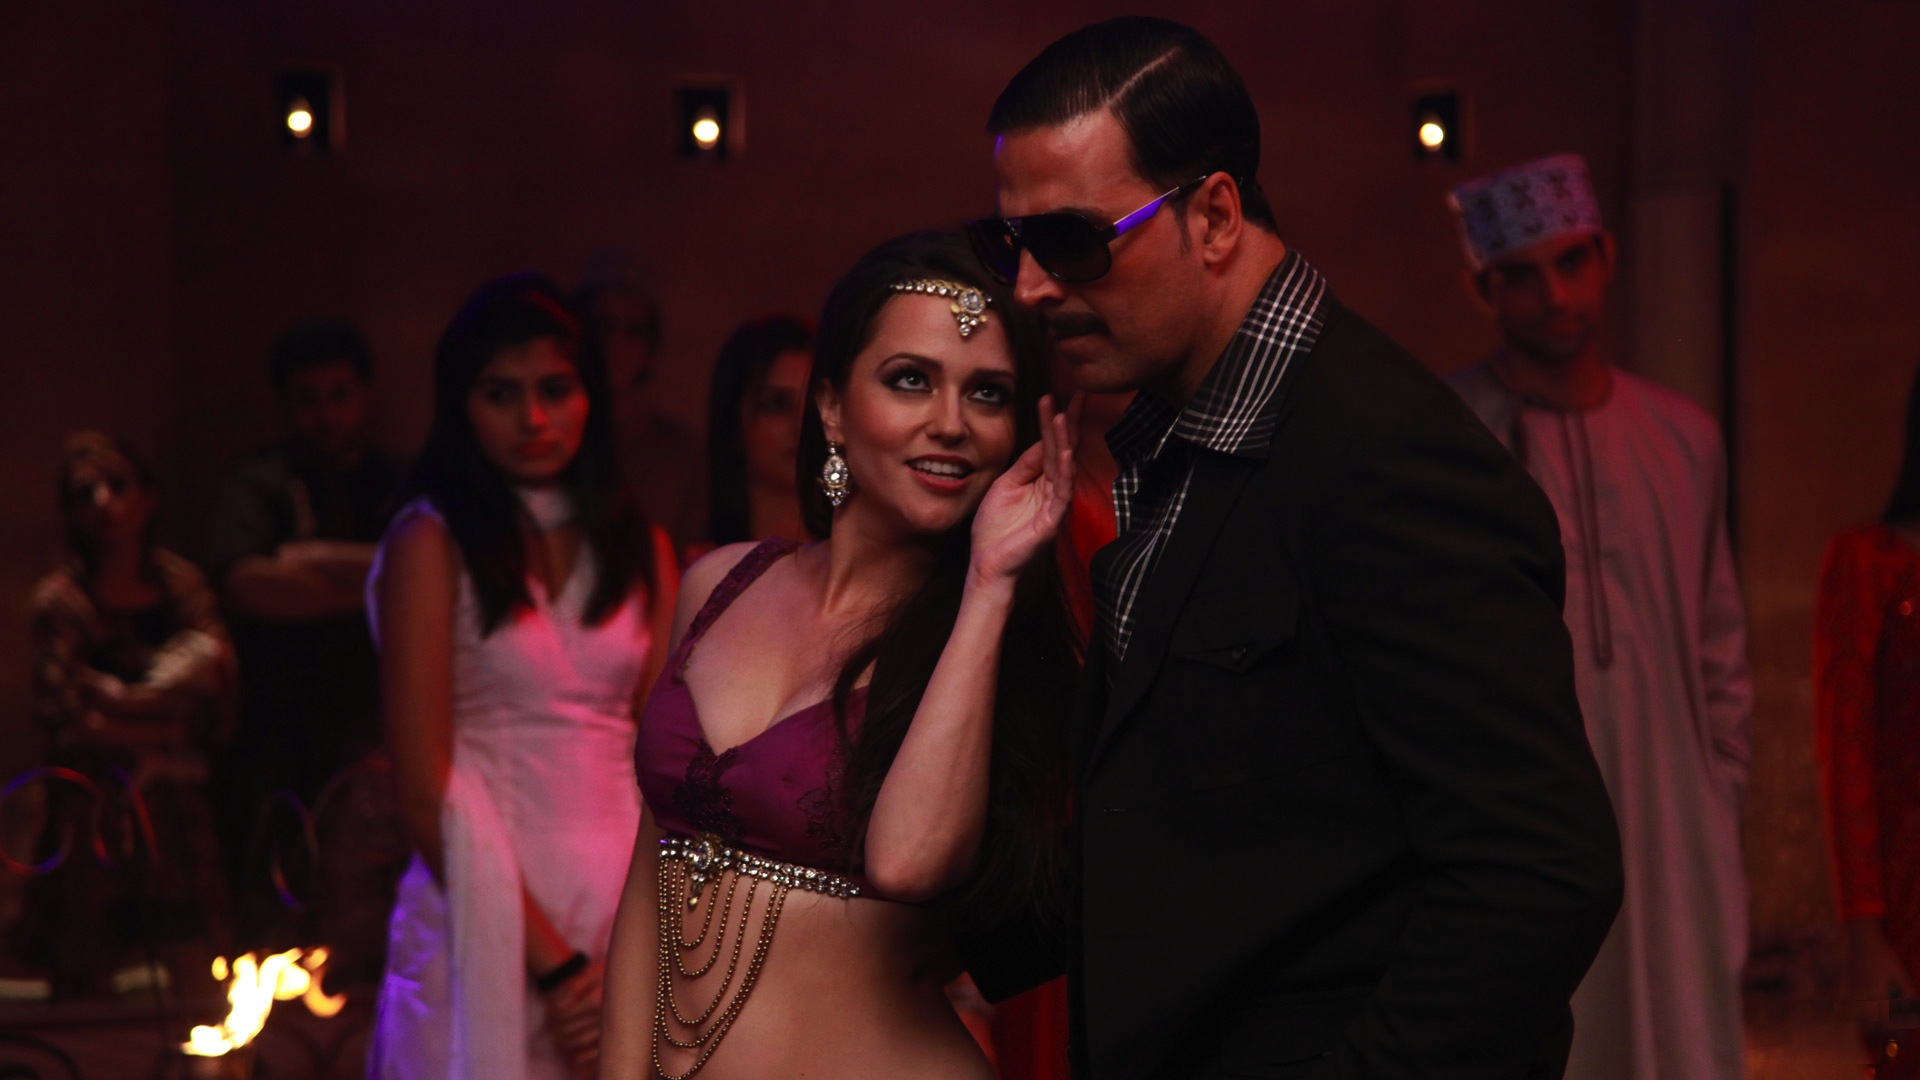 'Once Upon A Time In Mumbaai Dobara' Movie Gallery